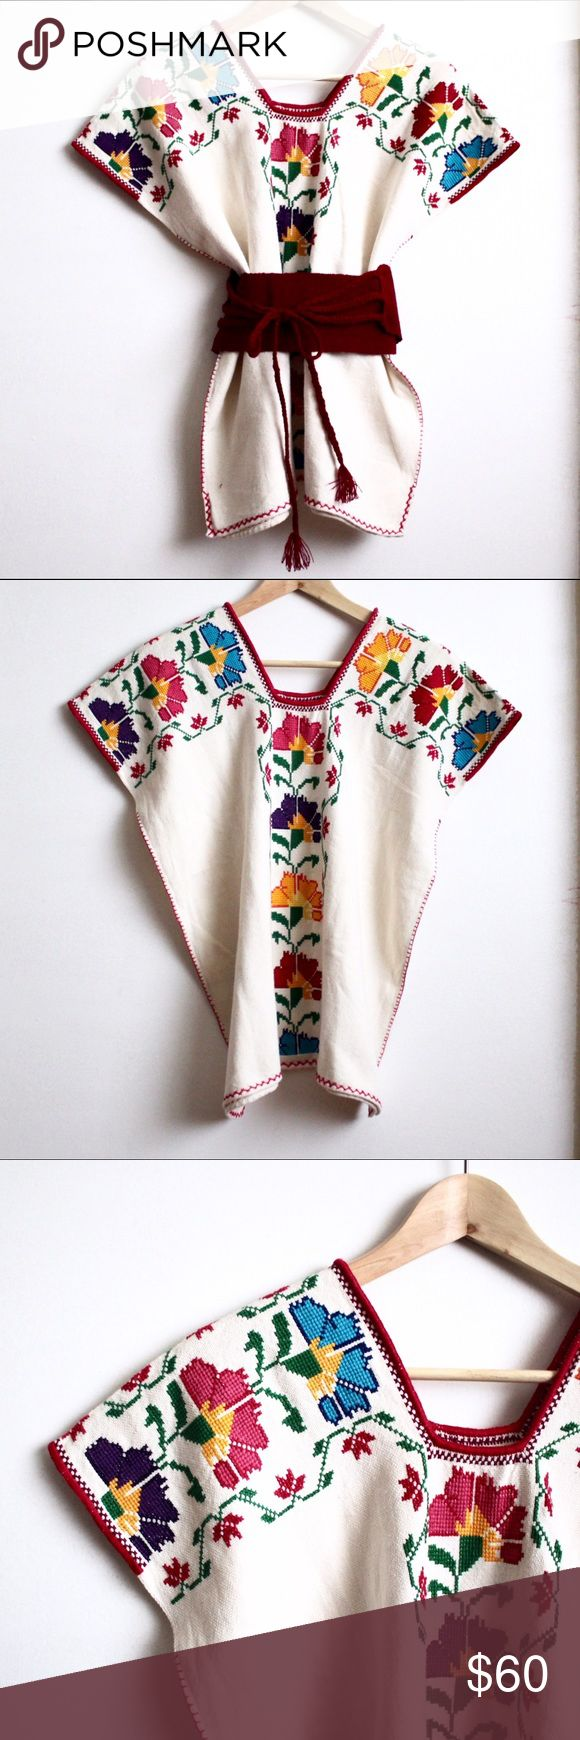 "Cross Stitch Mexican Blouse This listing includes a beautifully embroidered blouse that was handmade in Mexico. It has a very boxy fit, so I'm also including a dark pink/ red belt. This type is belt is often worn with this type of blouse. It is made of a natural cotton/linen material. The bust measures about 22"", and the length measures about 25"". No size listed. Purchased in Mexico. Free People Tops Blouses"